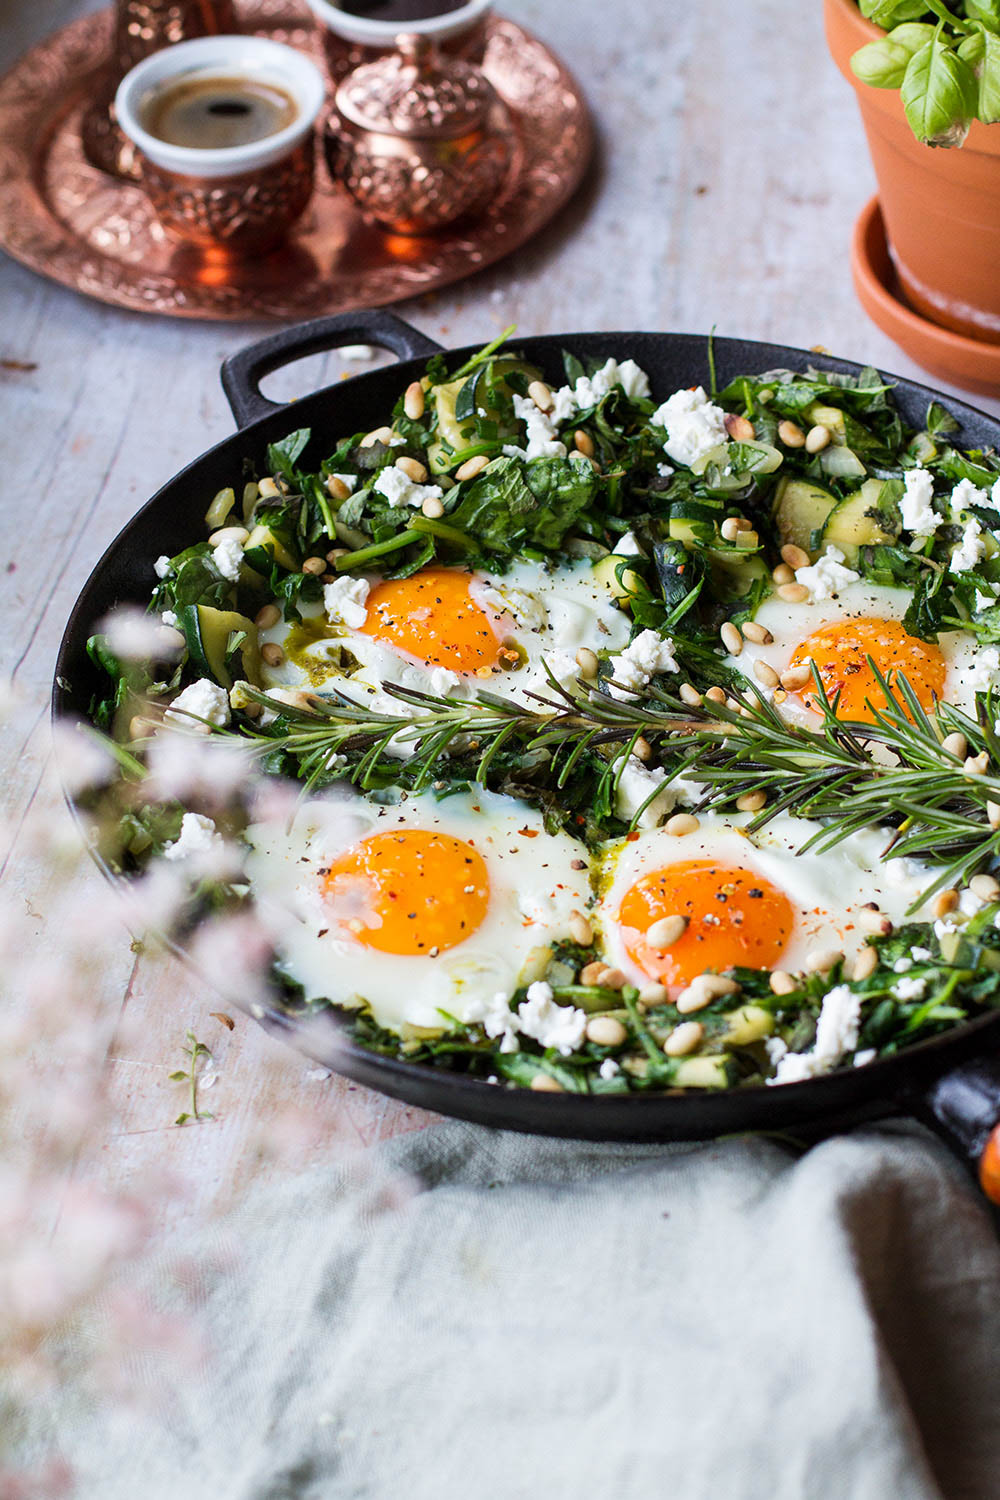 Four sunny-side-up eggs in a bed of greens in a skillet.